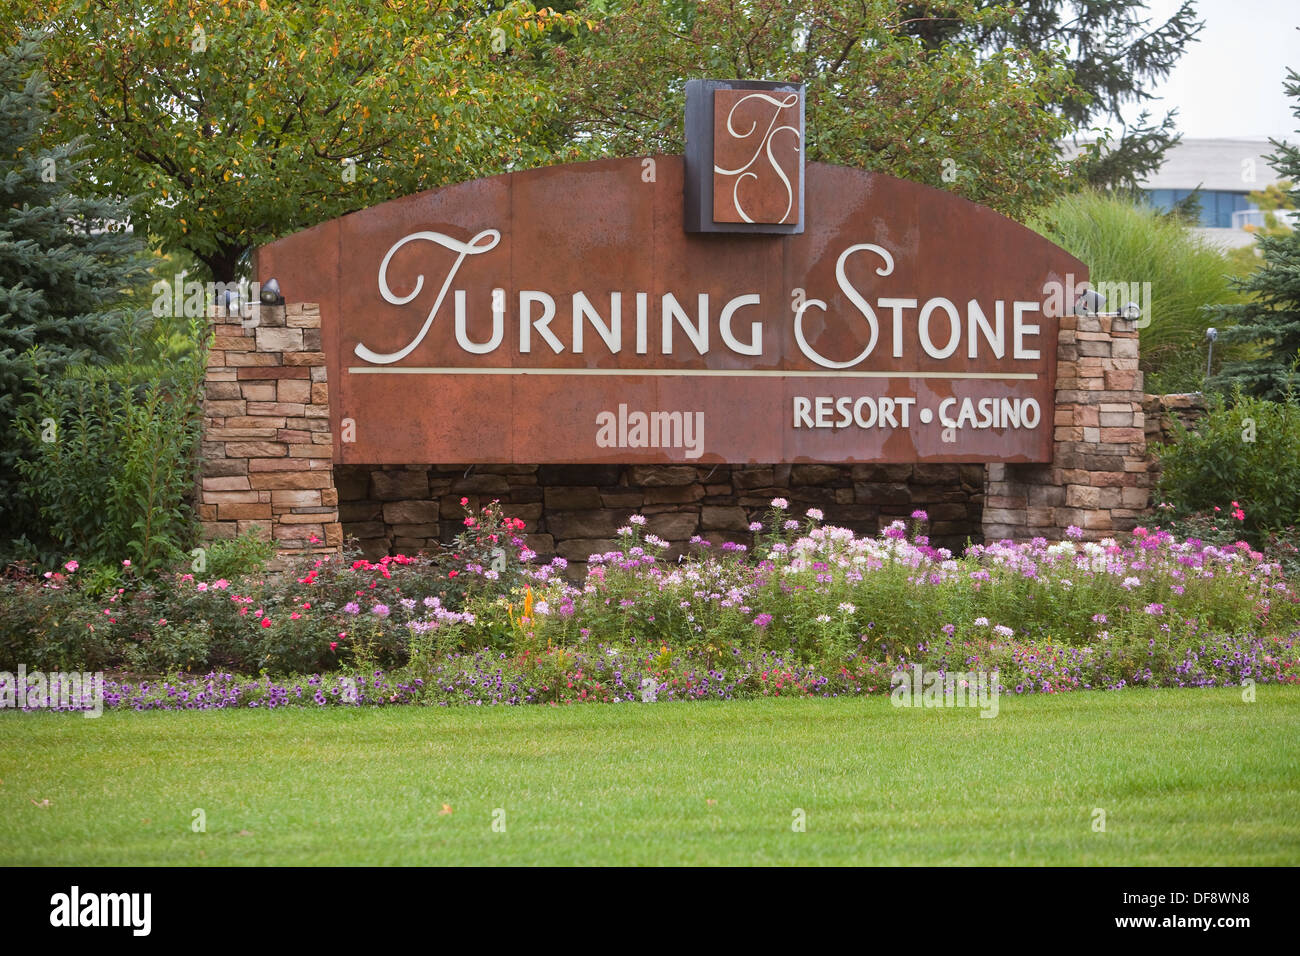 Turning Stone Resort & Casino is pictured in Verona, NY - Stock Image